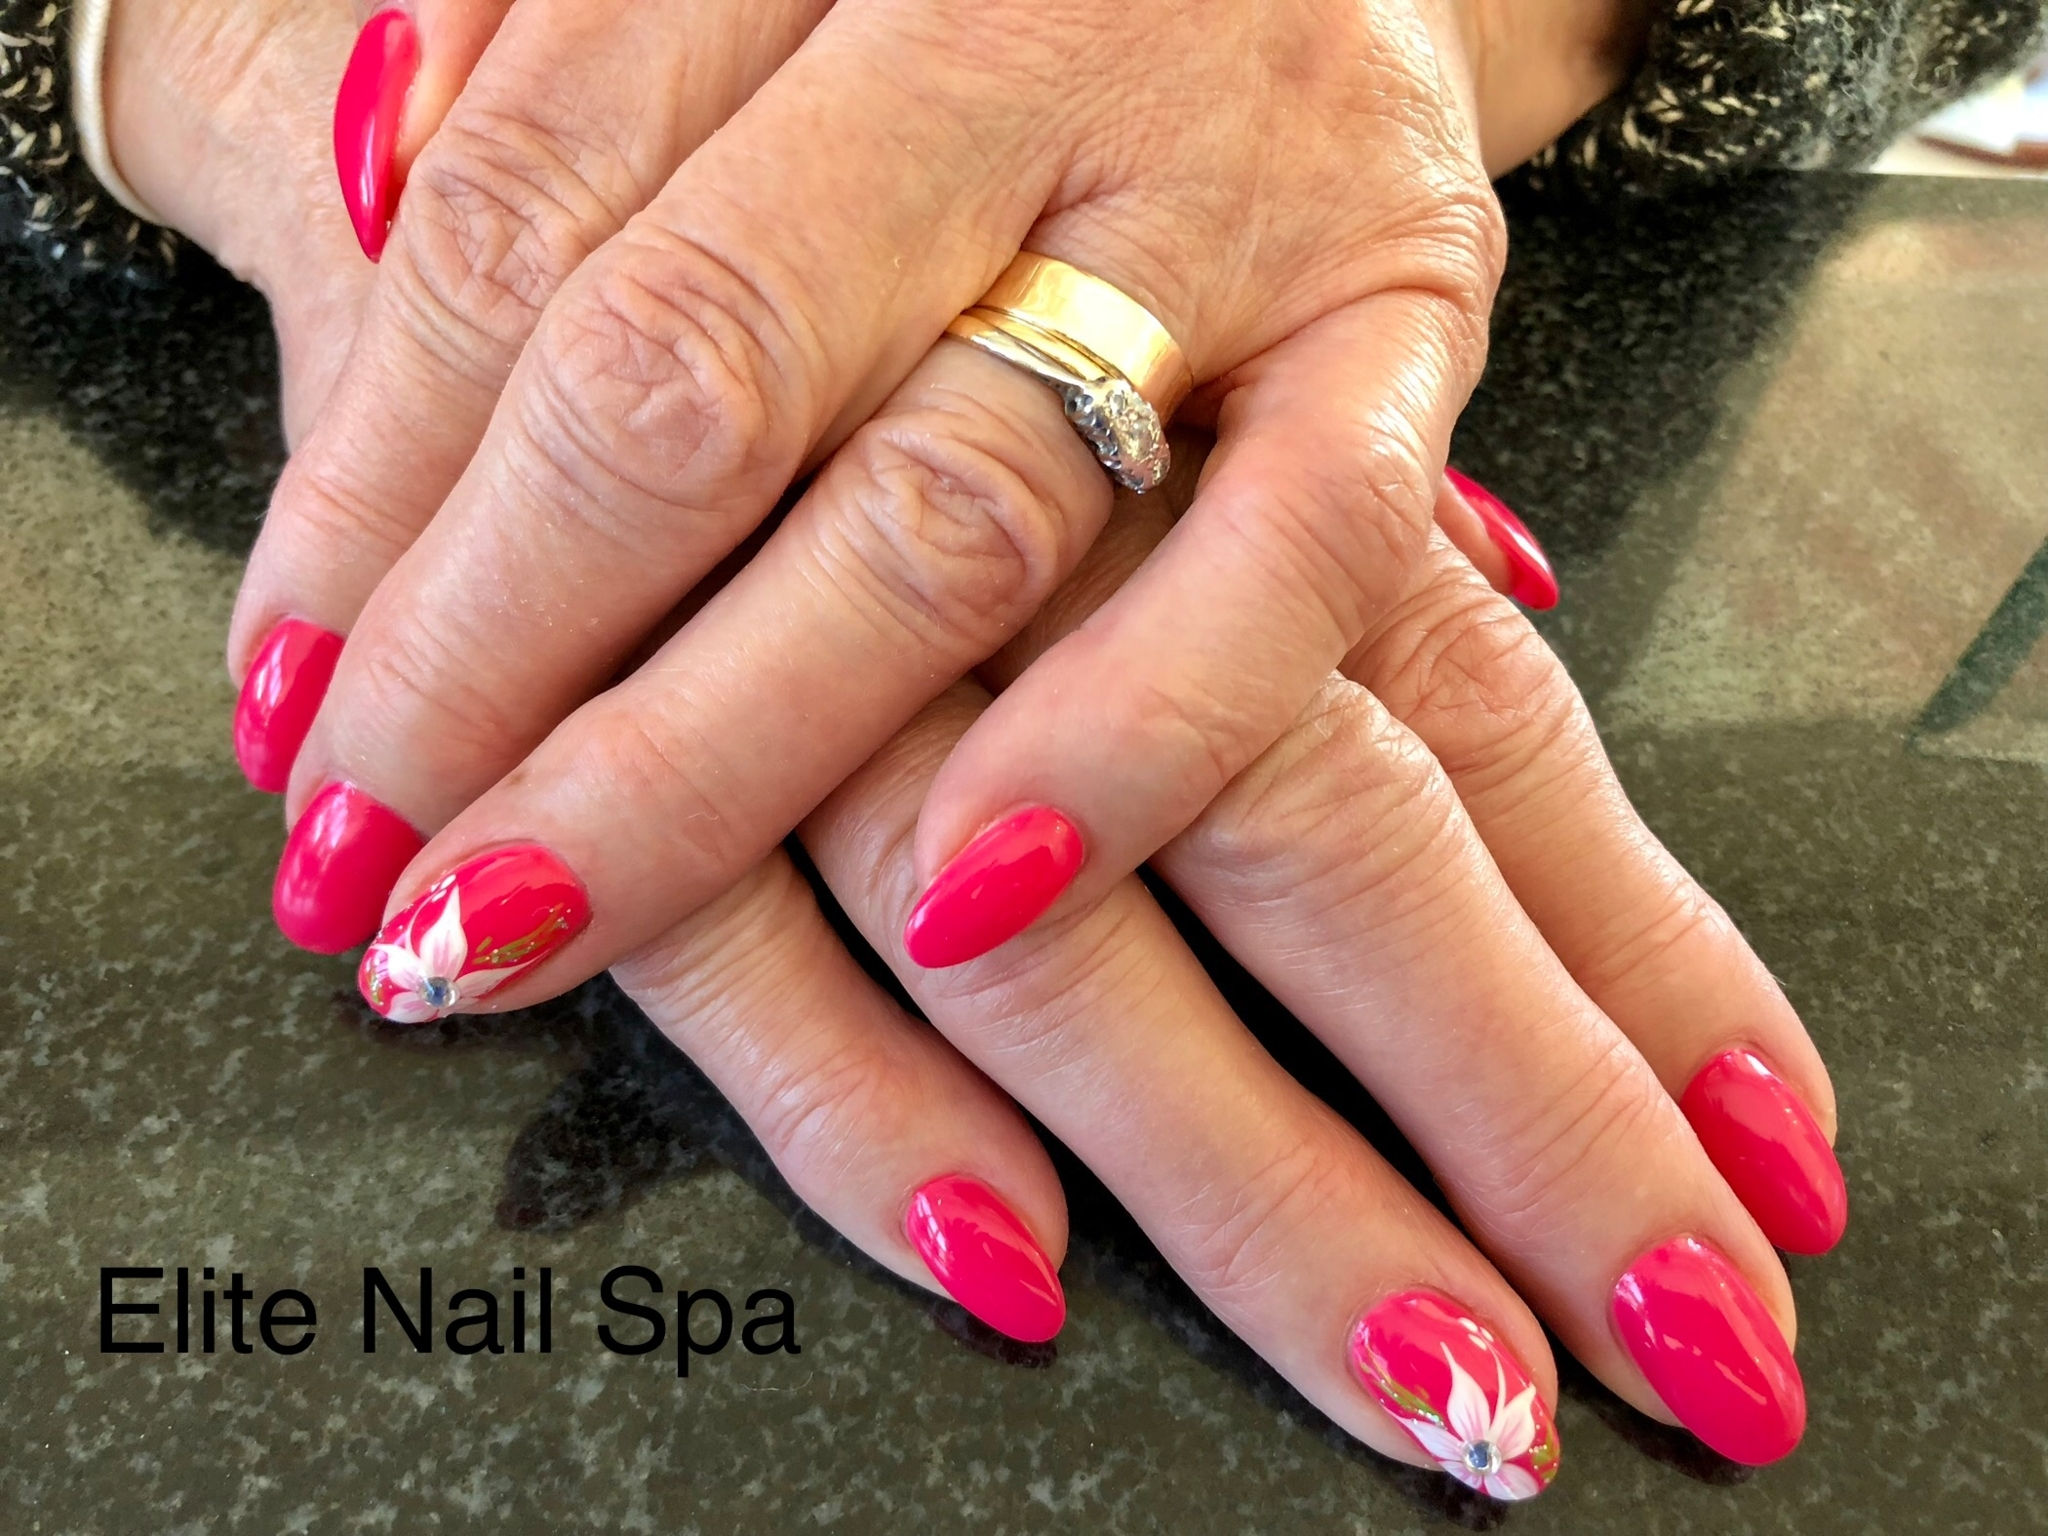 Elite Nail Spa in Whitby: Dipping Powder nails with design.